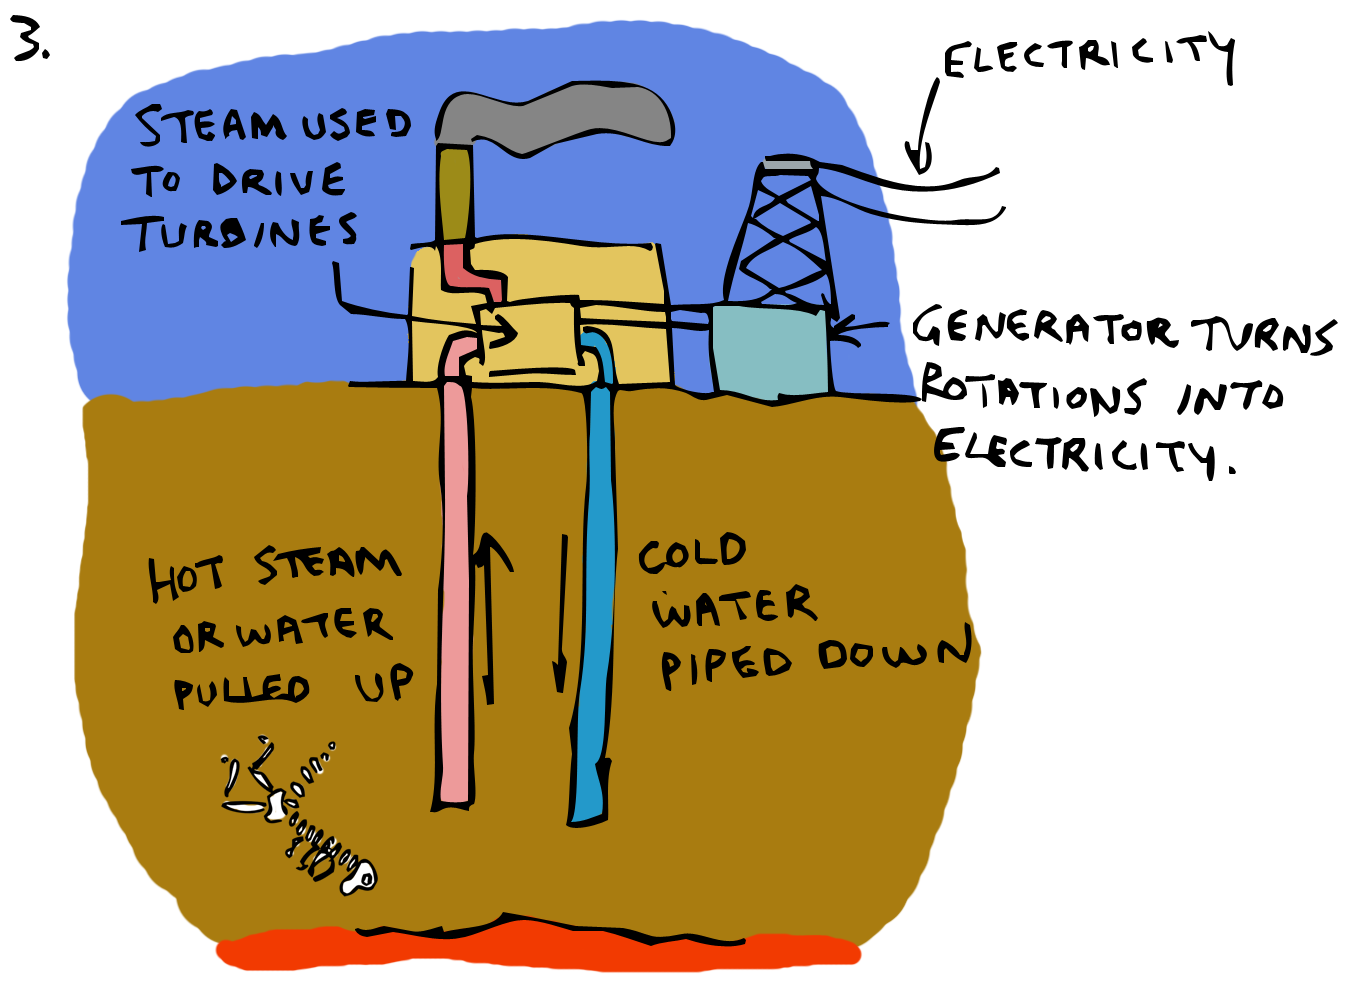 Sketchy Science February 2014 Geothermal Power Plant Block Diagram The Last Of These Options Offers Significant Advantages Where It Is Practical We Humans May Appreciate A Warm House In Winter But Really